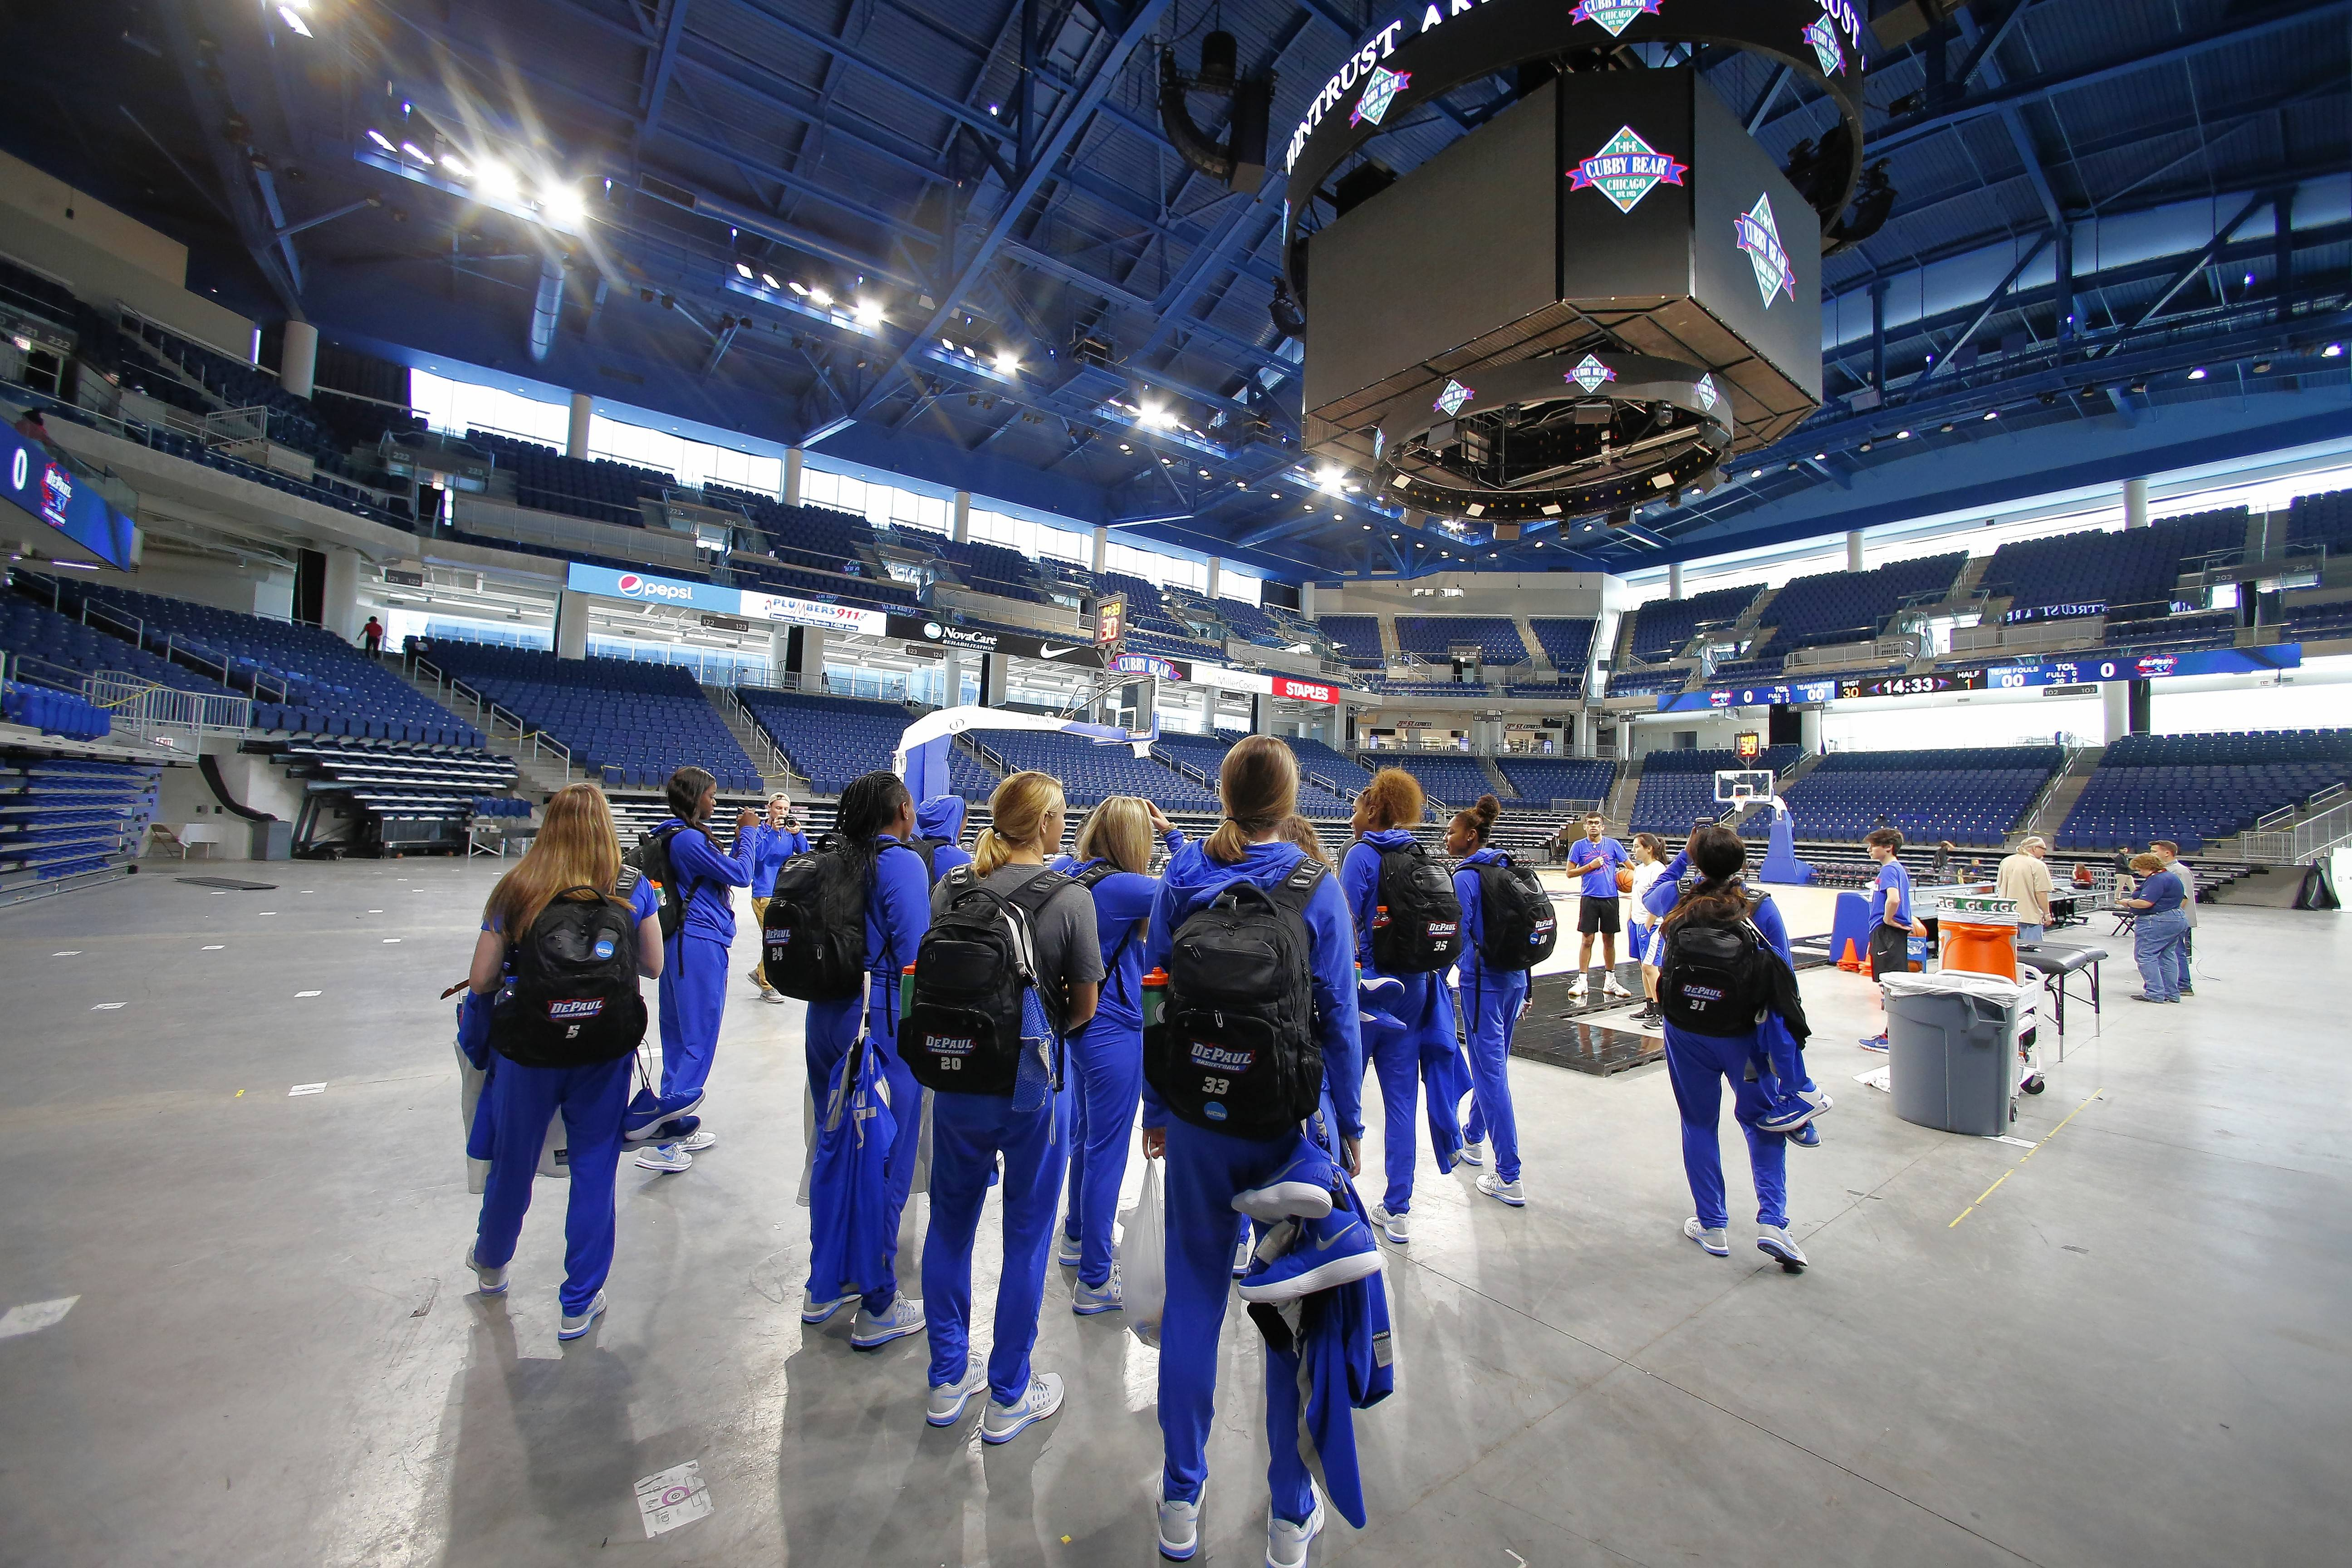 New arena could be a game-changer for DePaul basketball